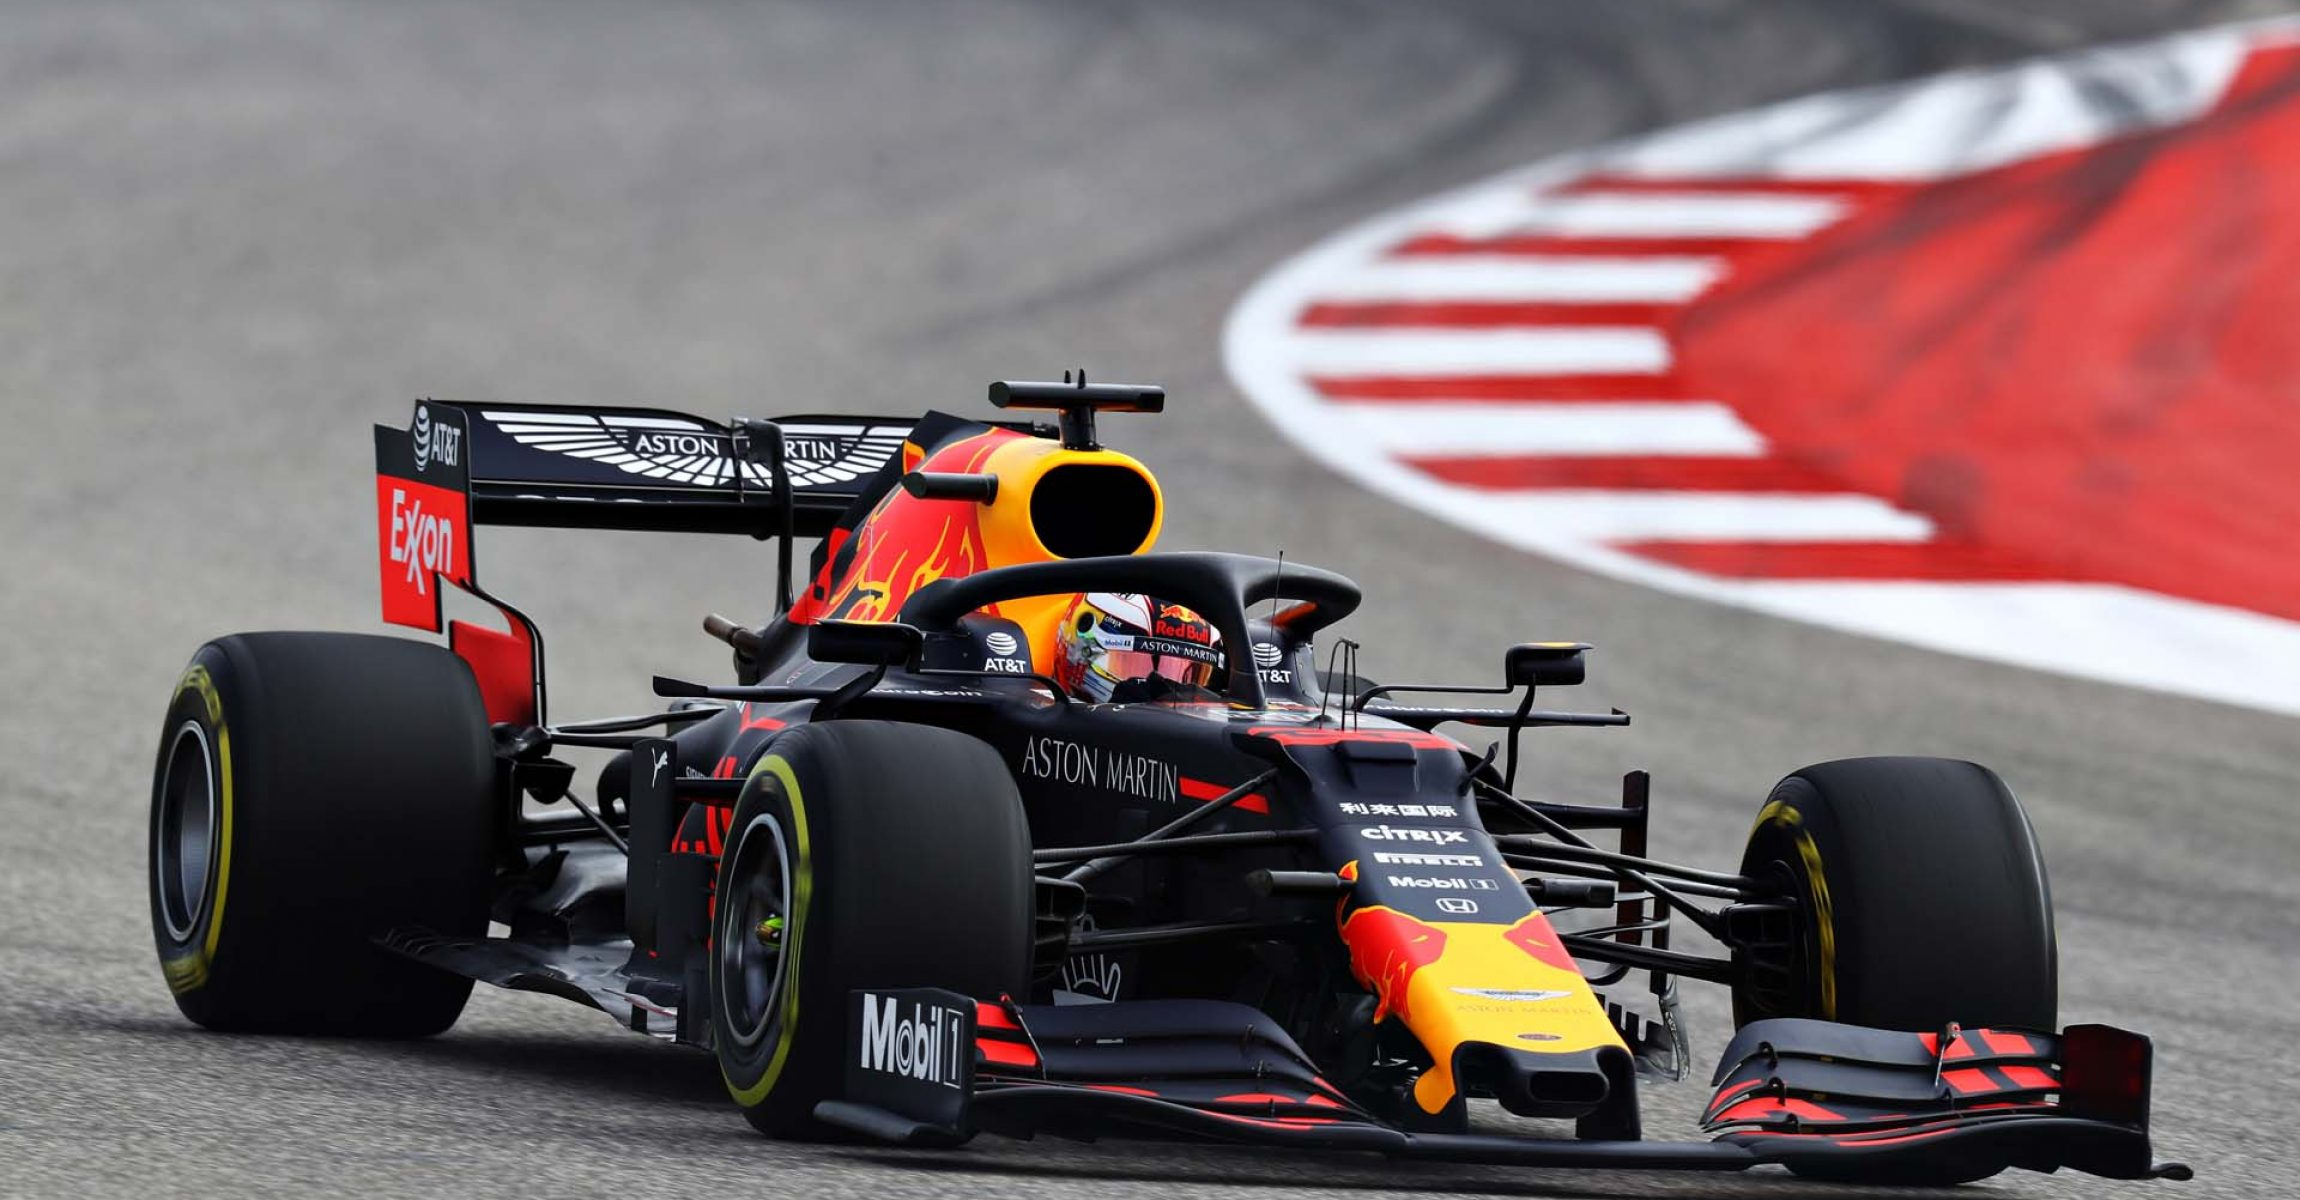 AUSTIN, TEXAS - NOVEMBER 01: Max Verstappen of the Netherlands driving the (33) Aston Martin Red Bull Racing RB15 on track during practice for the F1 Grand Prix of USA at Circuit of The Americas on November 01, 2019 in Austin, Texas. (Photo by Mark Thompson/Getty Images) // Getty Images / Red Bull Content Pool // AP-2229CNCBH2111 // Usage for editorial use only //